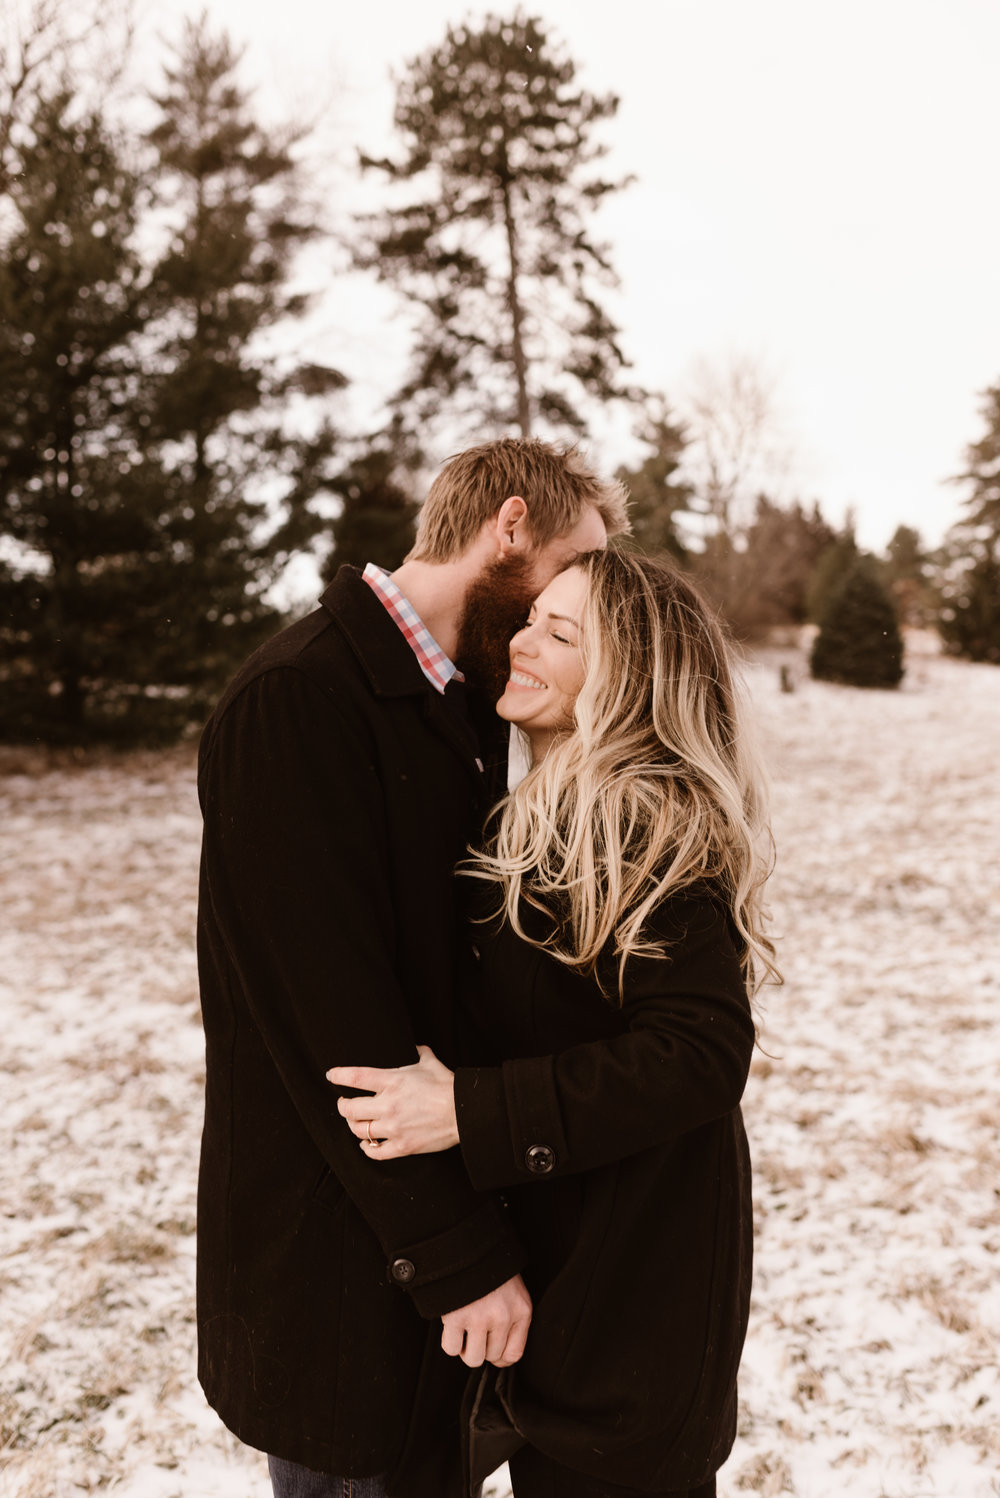 Nebraska Engagement Photographer Kaylie Sirek Photography 010.jpg